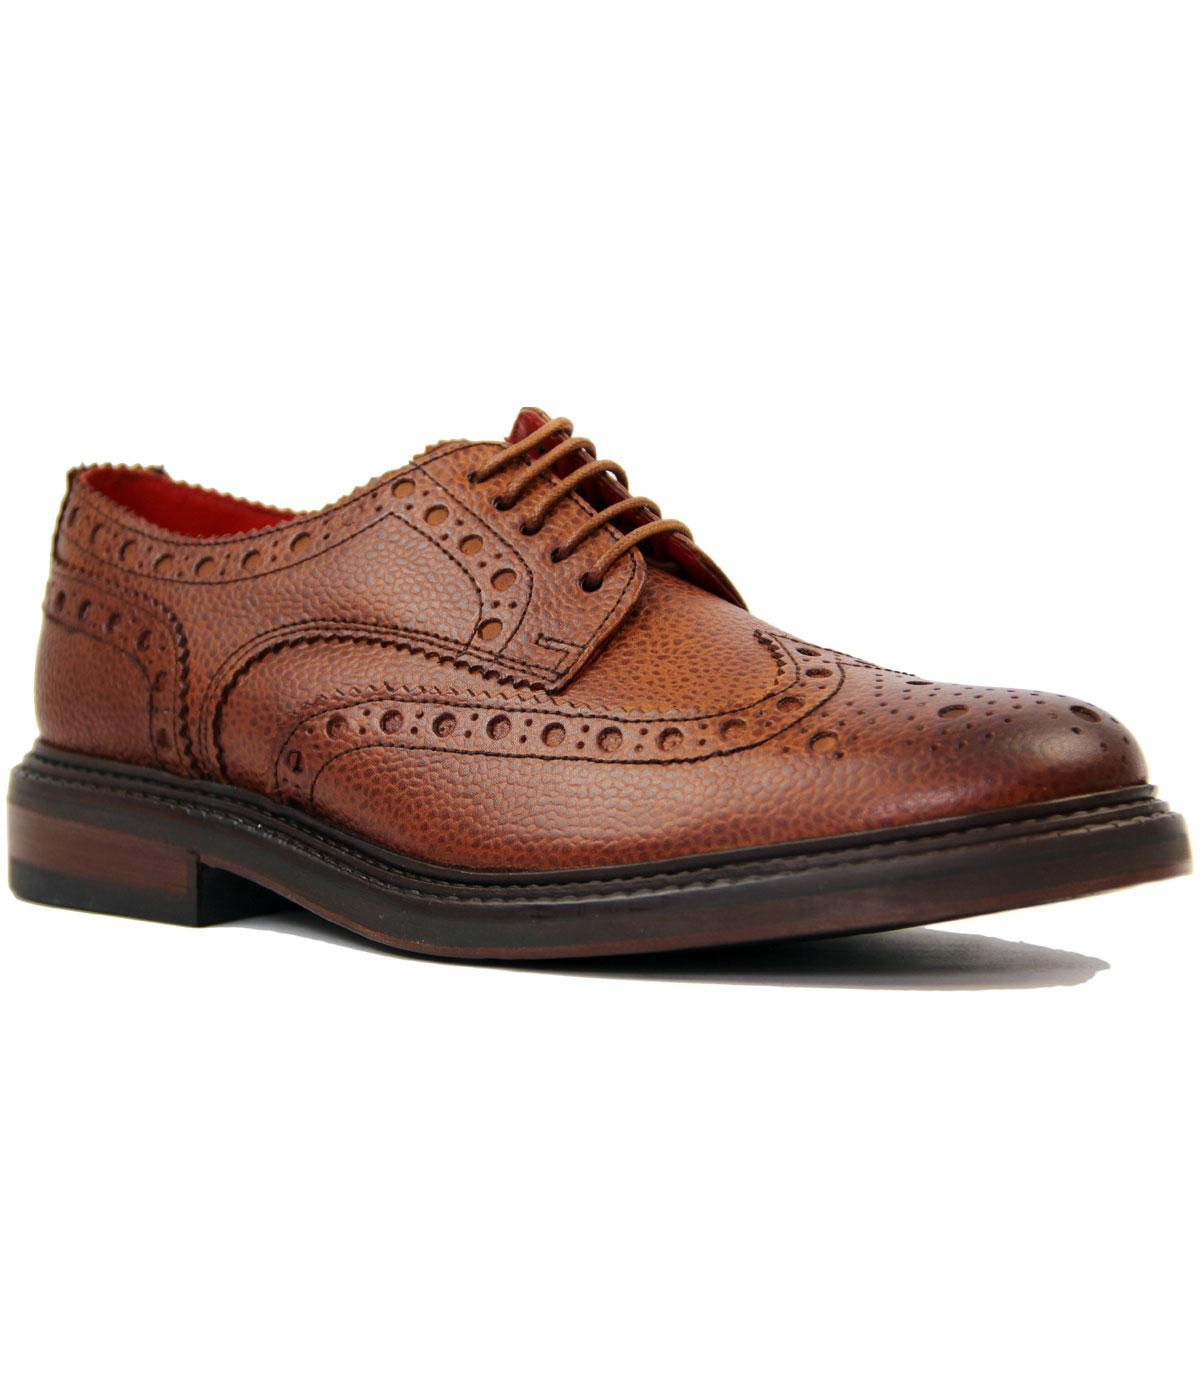 Faraday BASE LONDON Scotch Grain Leather Brogues